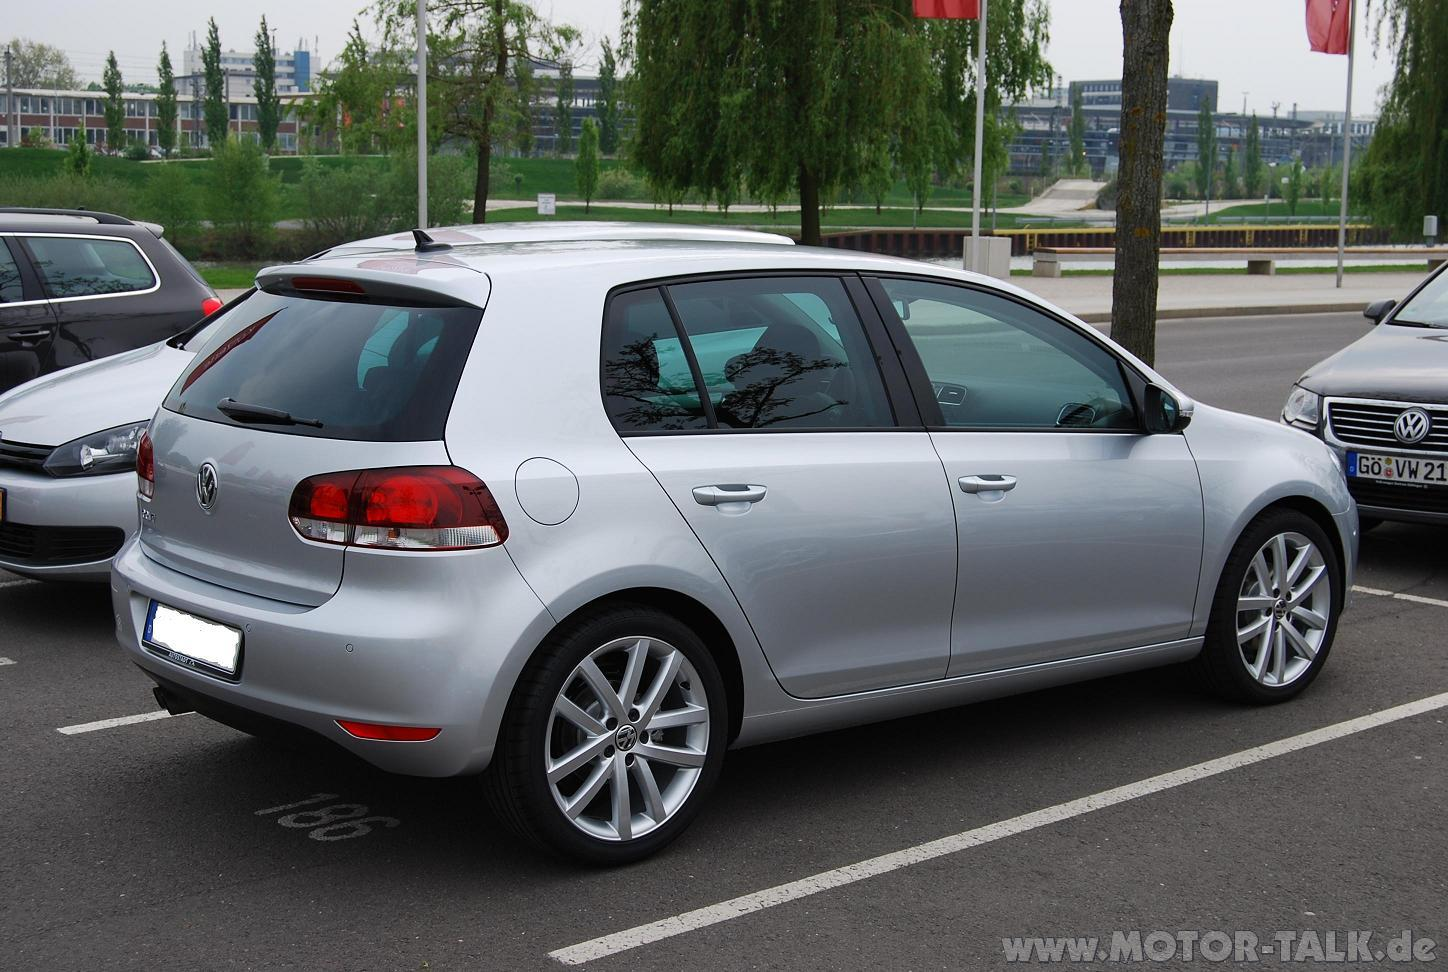 vw golf vi hl 2 0 tdi 001 mein golf vi ist da fotos. Black Bedroom Furniture Sets. Home Design Ideas